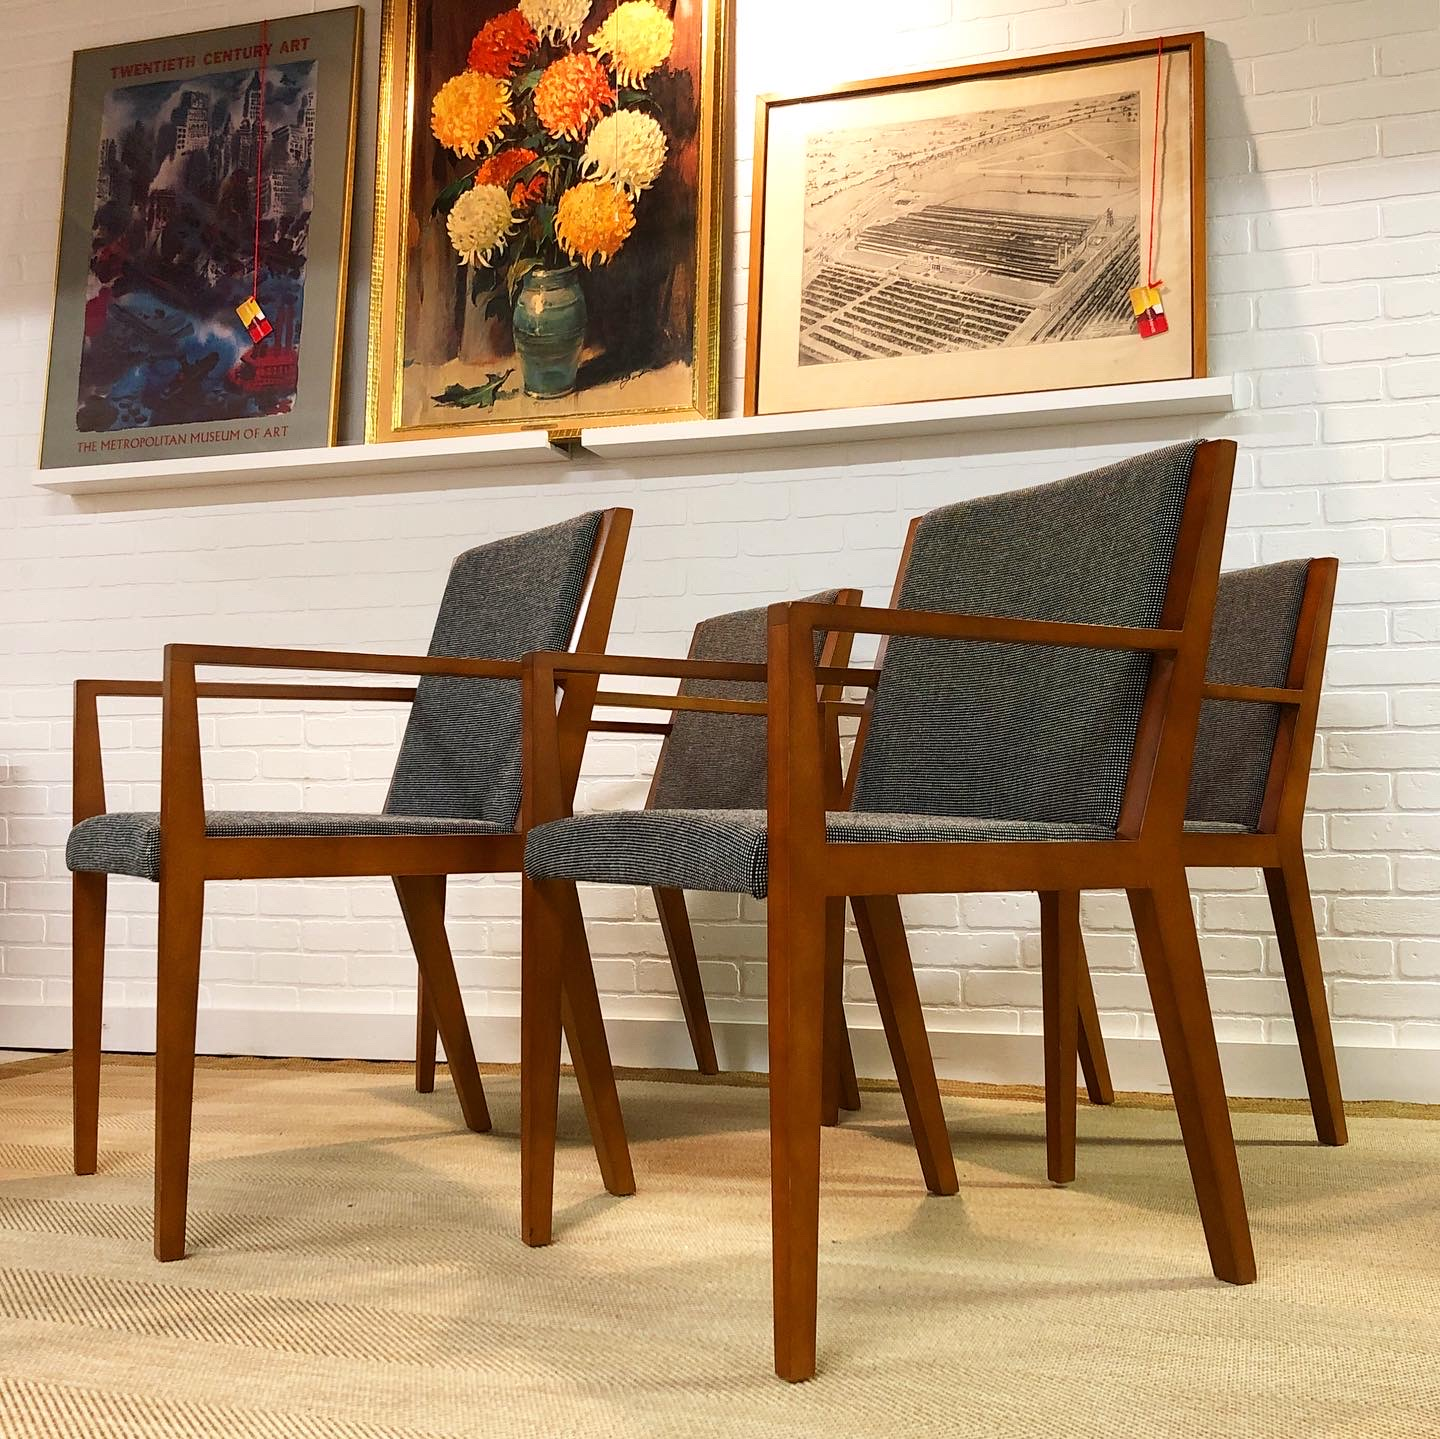 NNK_chairs-dining_cherry-frames_1